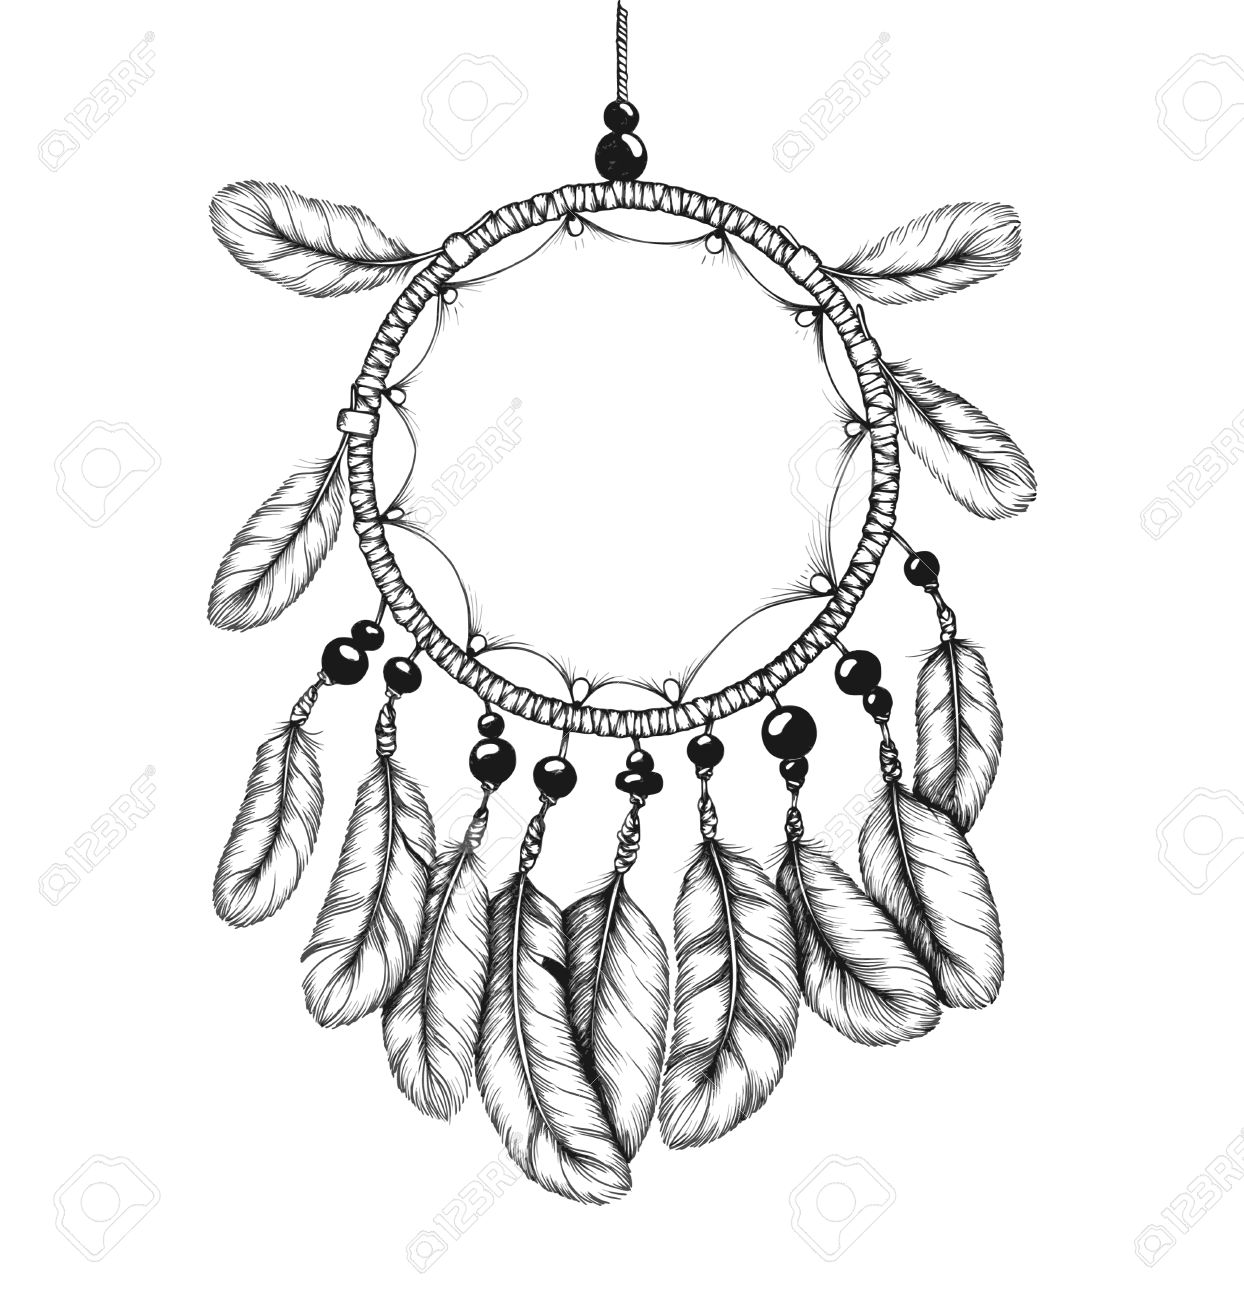 1244x1300 Ethnic Tribal Dream Catcher With Feathers. Native American Style